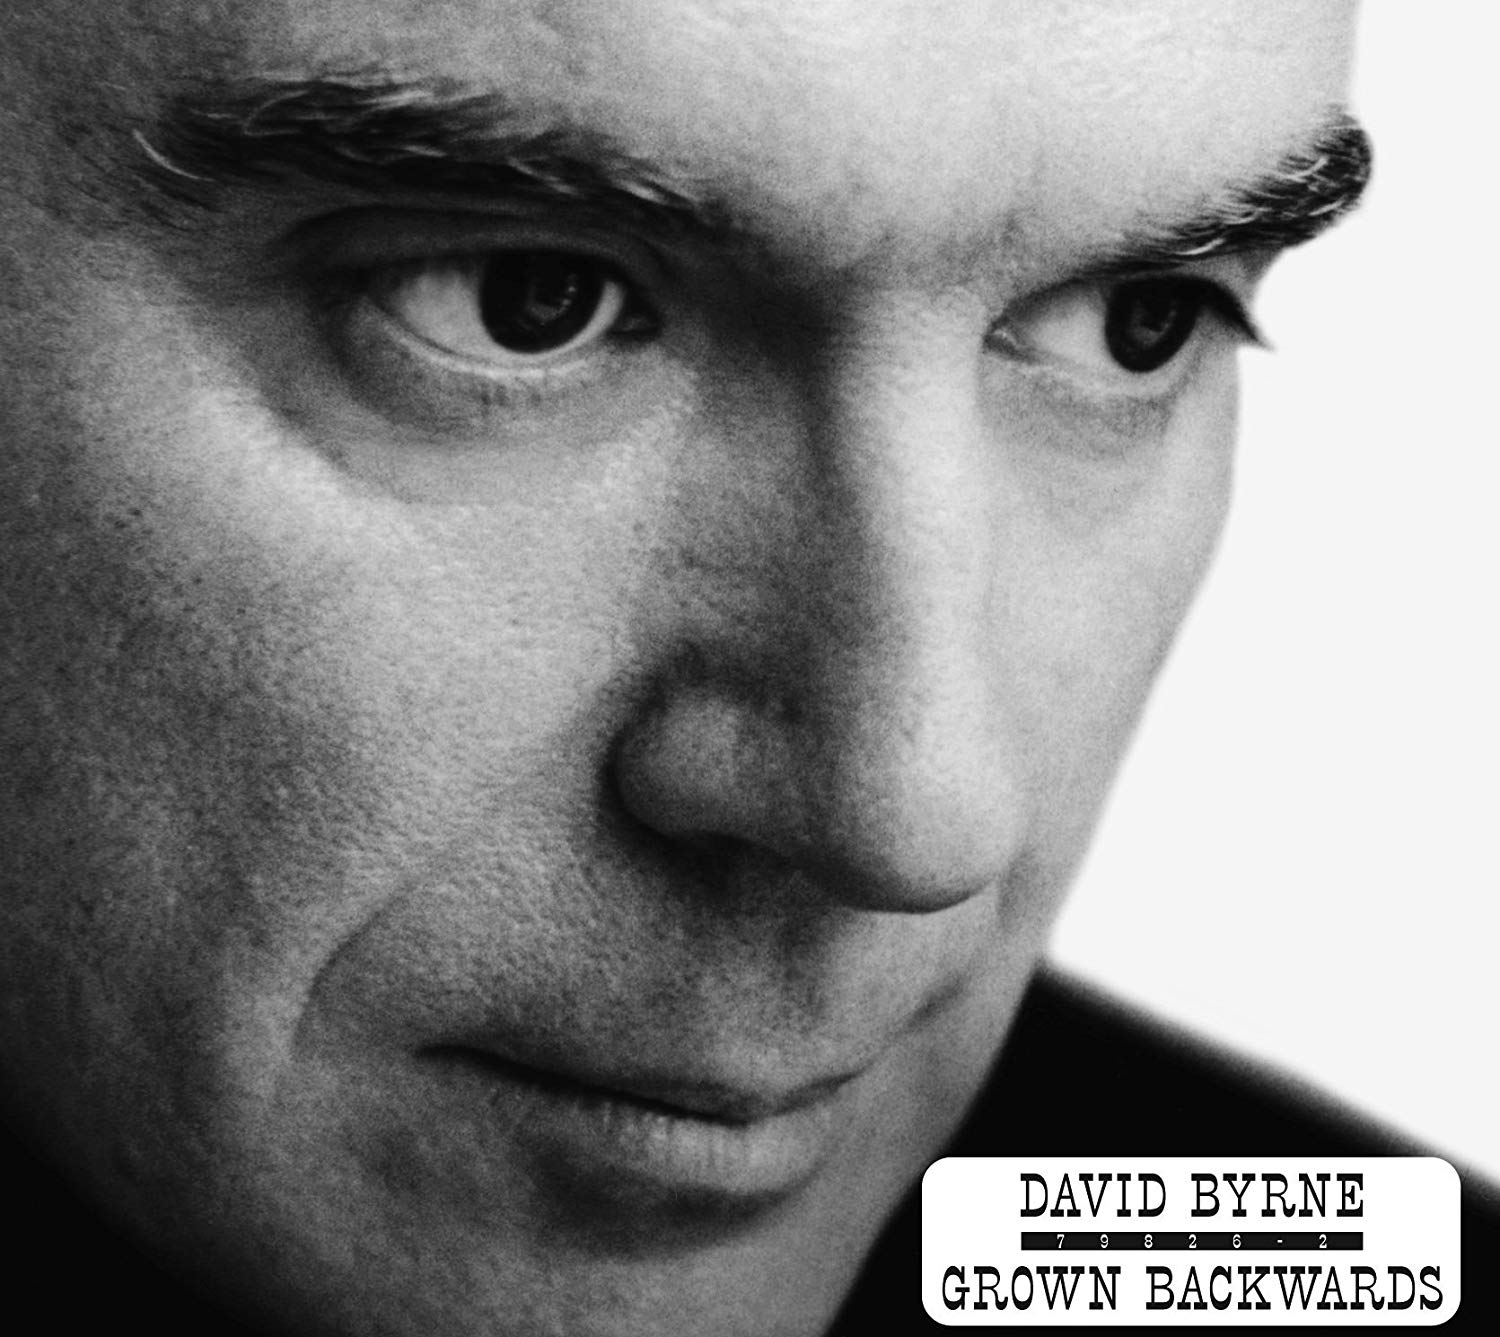 David Byrne Grown Backwards reissue vinyl